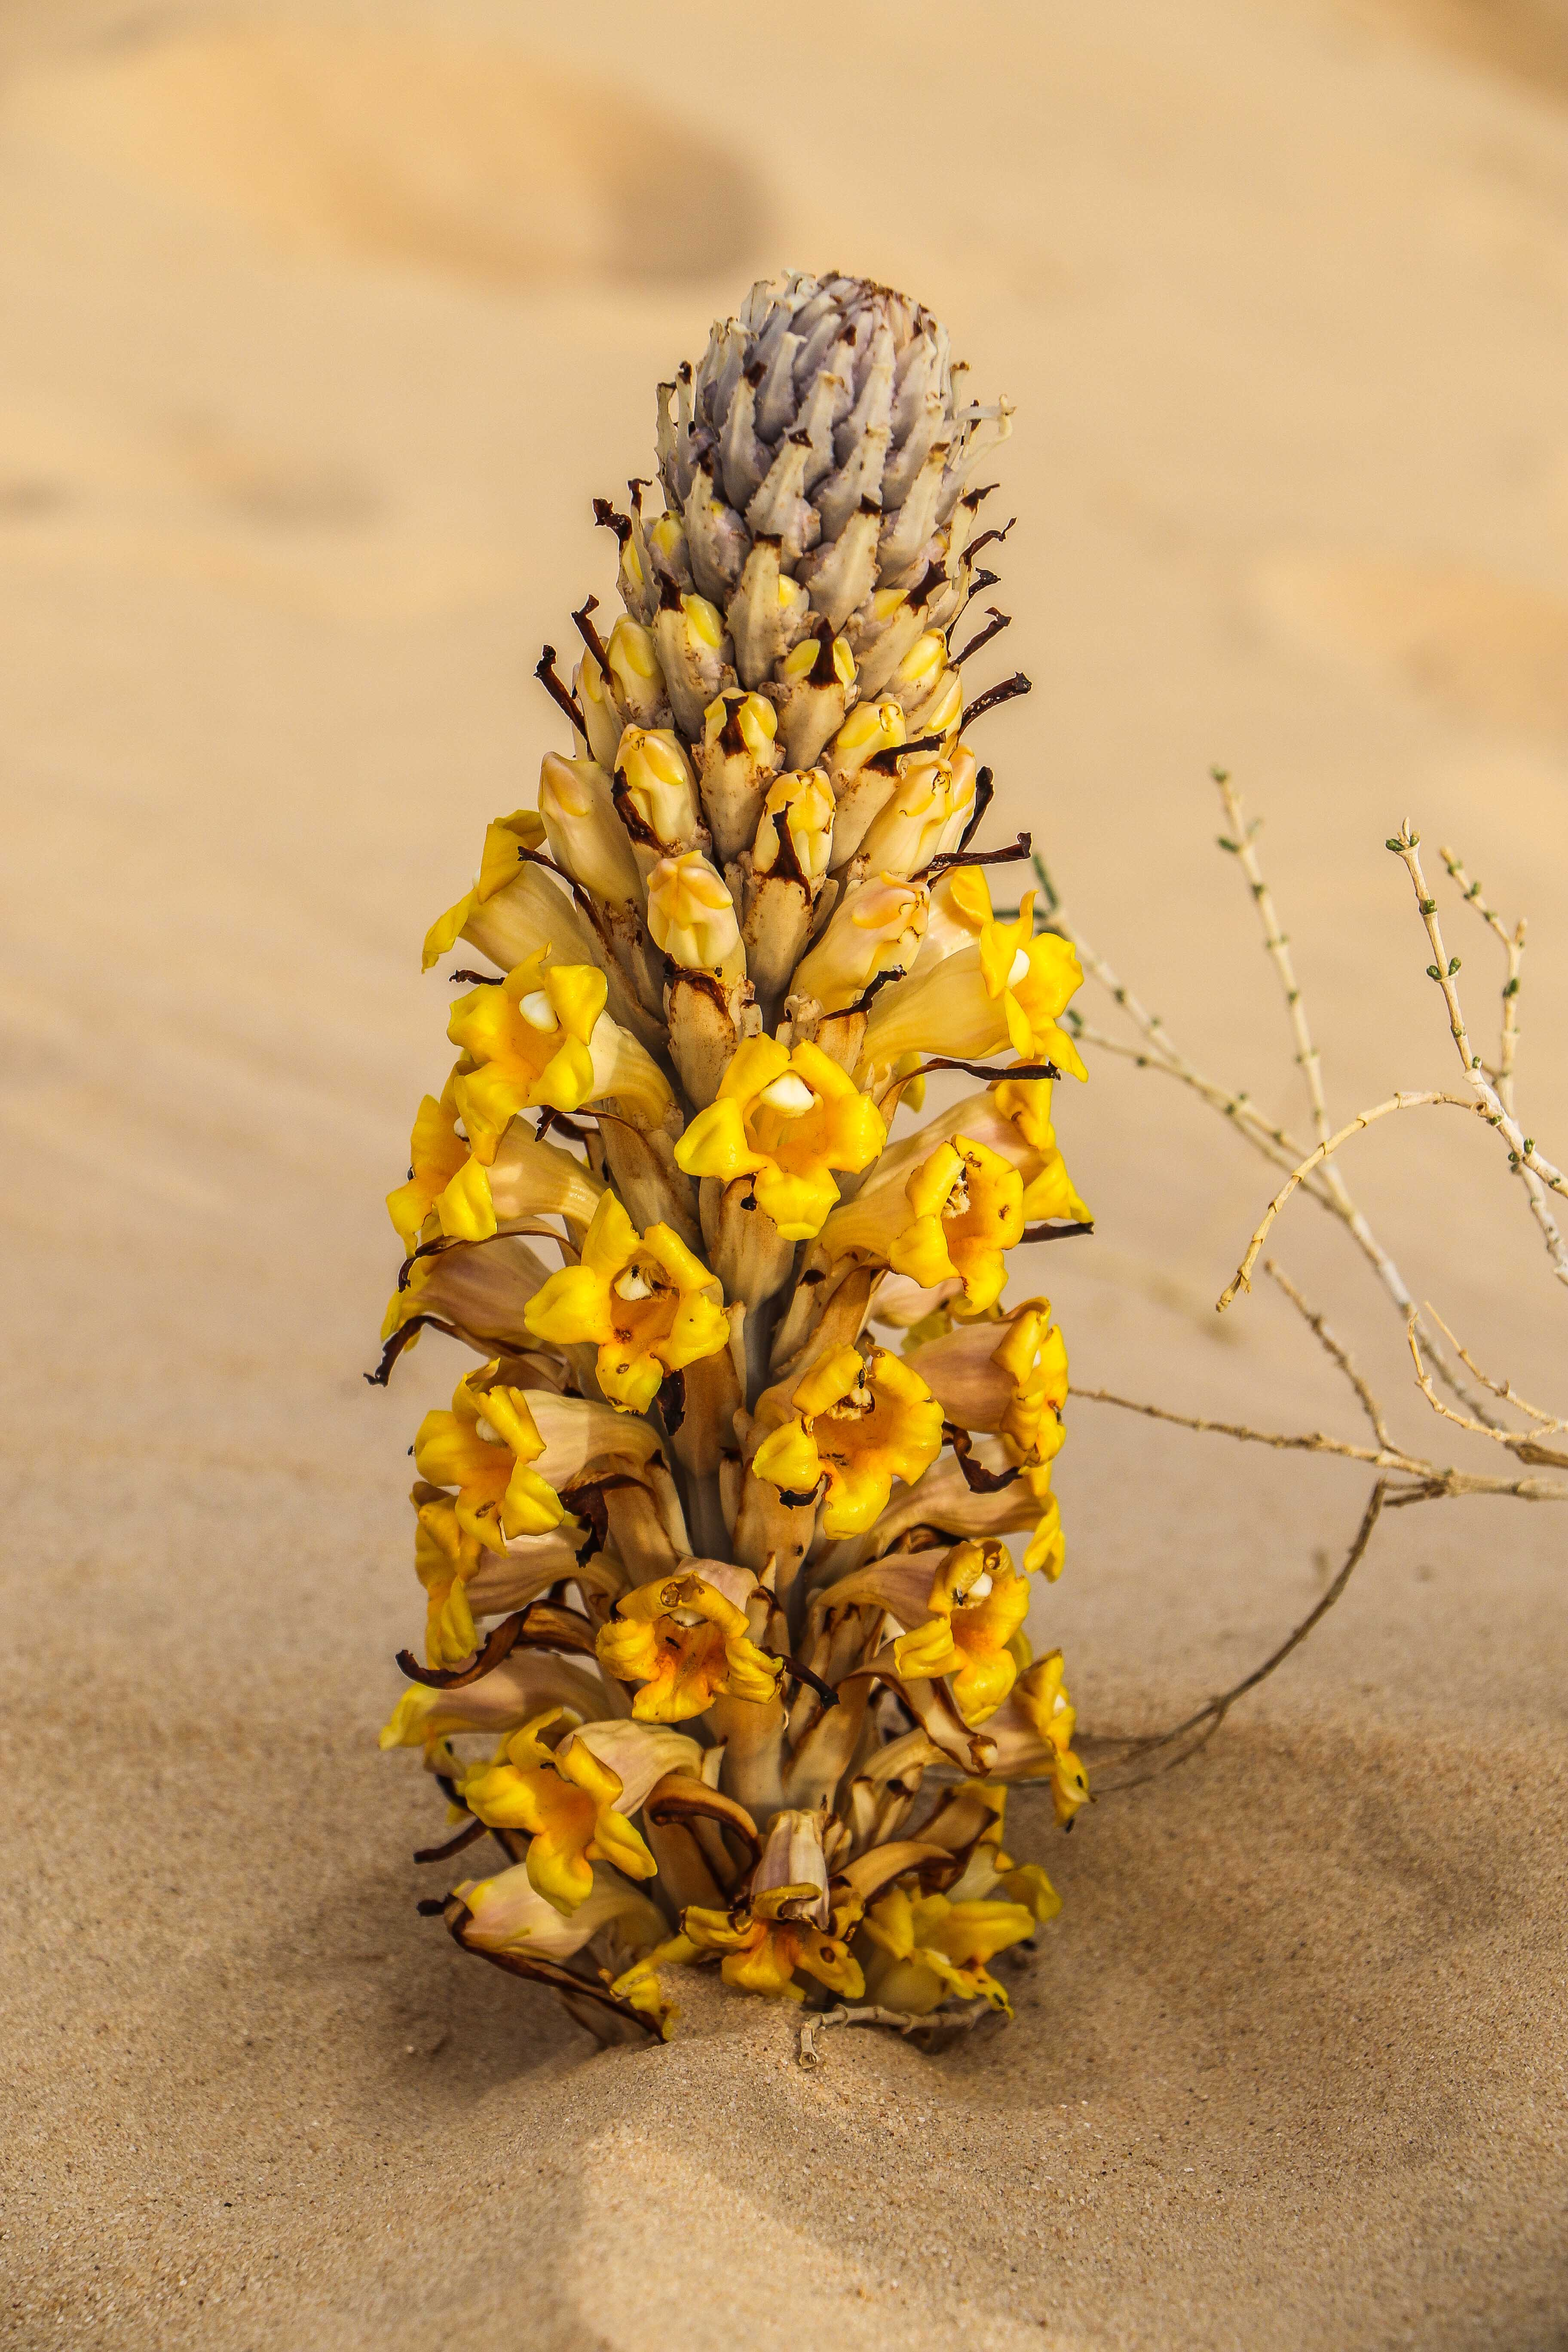 Desert flower in Al-Ahsa (photo: F. Egal)